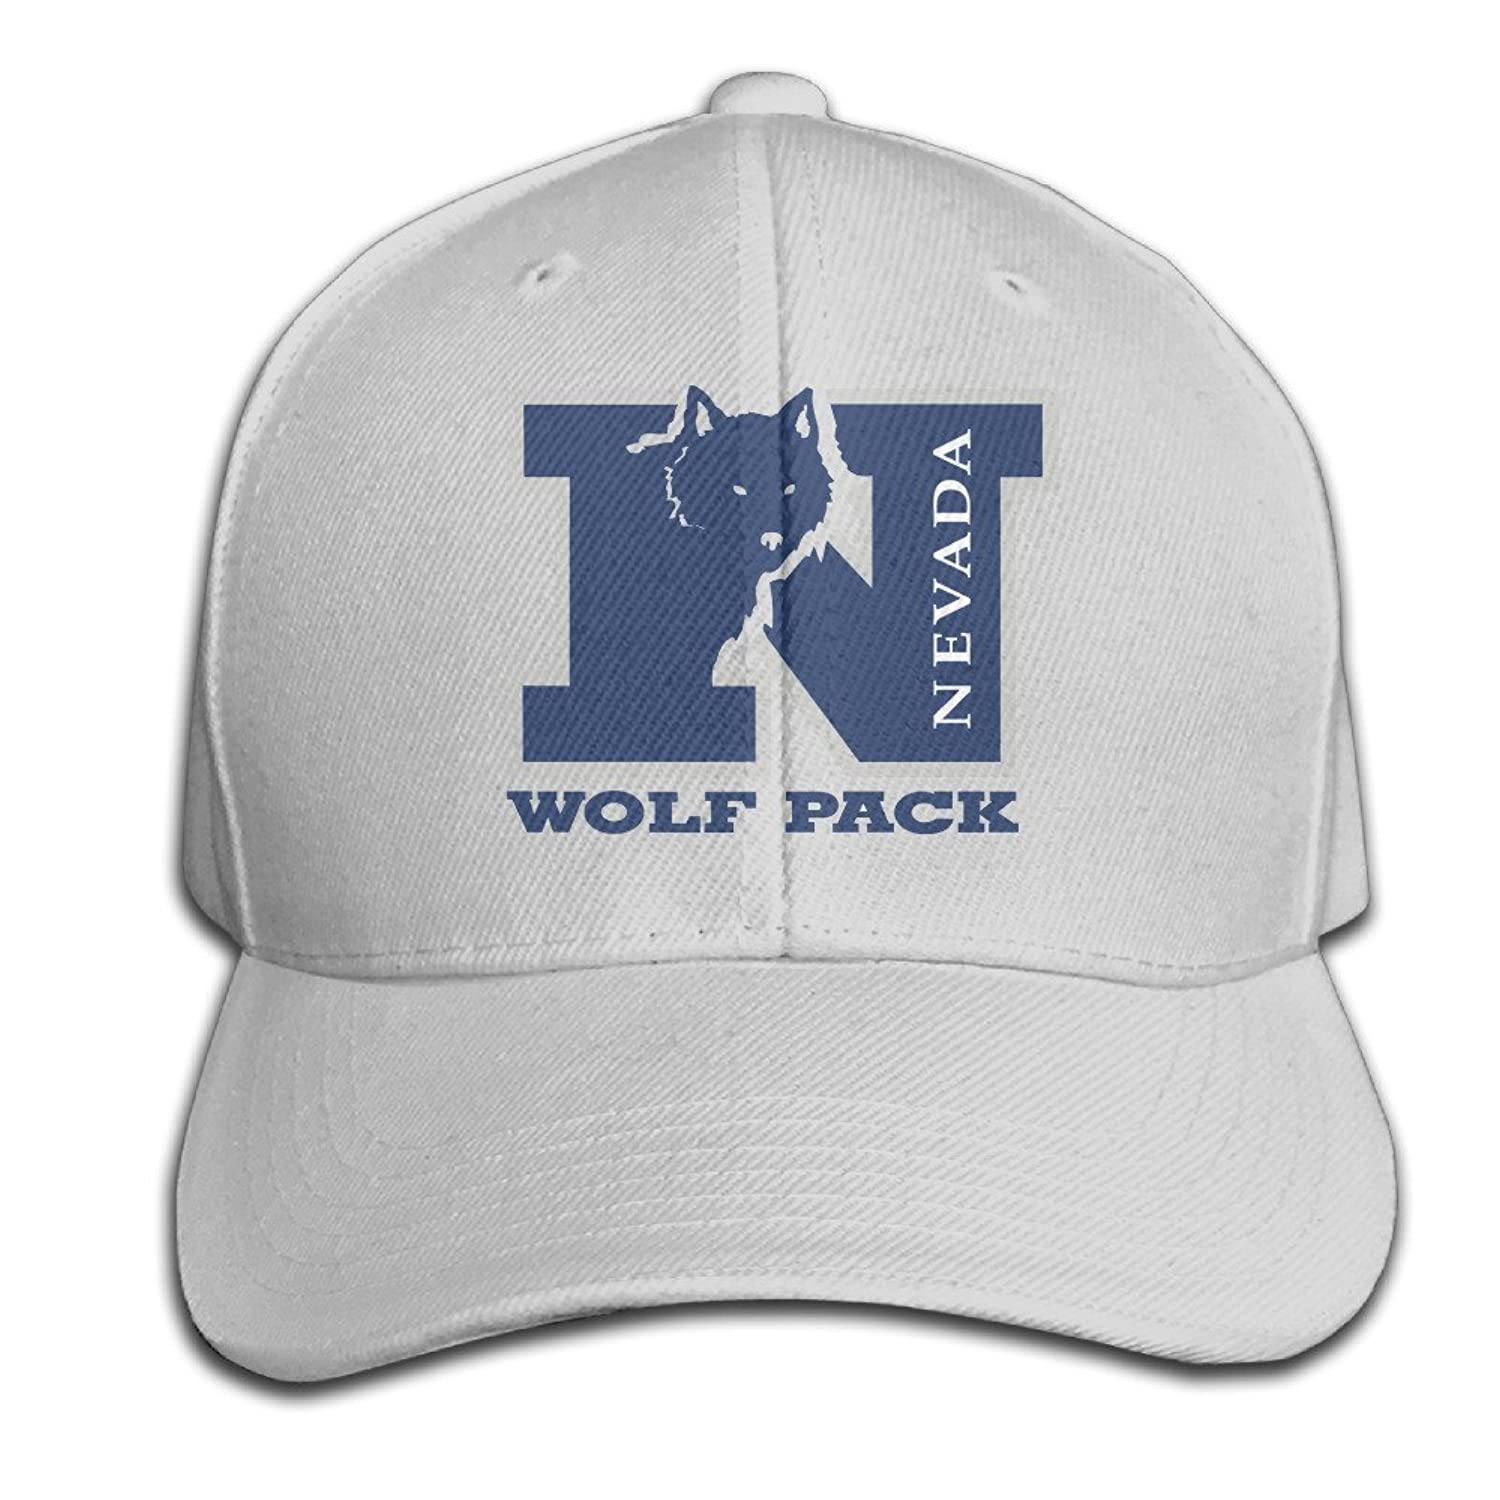 Nevada Wolf Pack Hats Adjustable Ash Baseball Cap